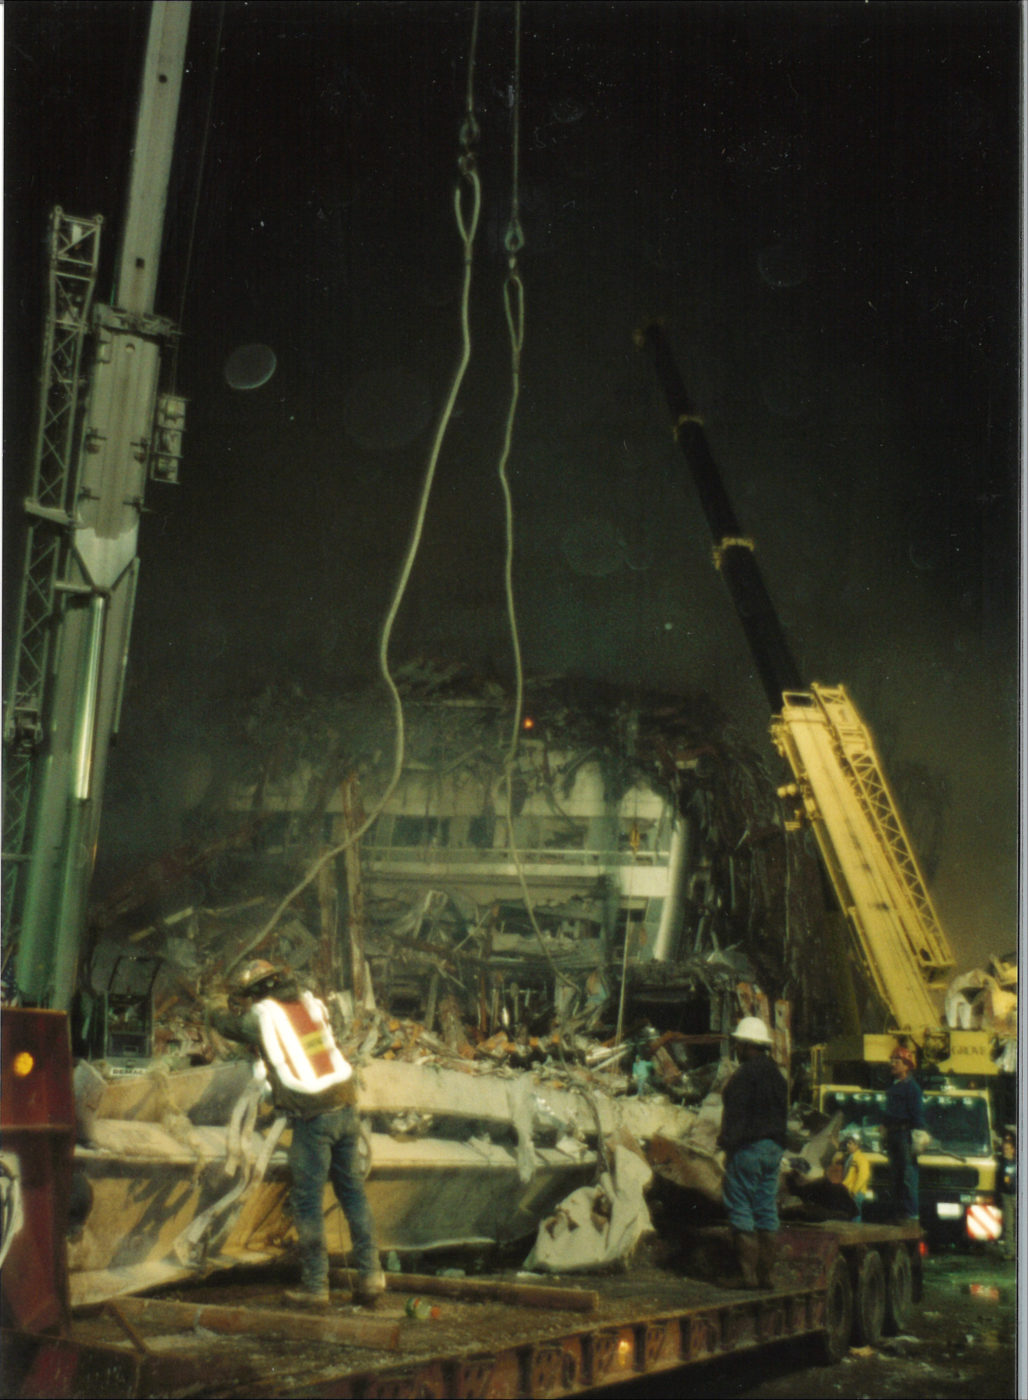 Workers loading a flatbed with debris at Ground Zero